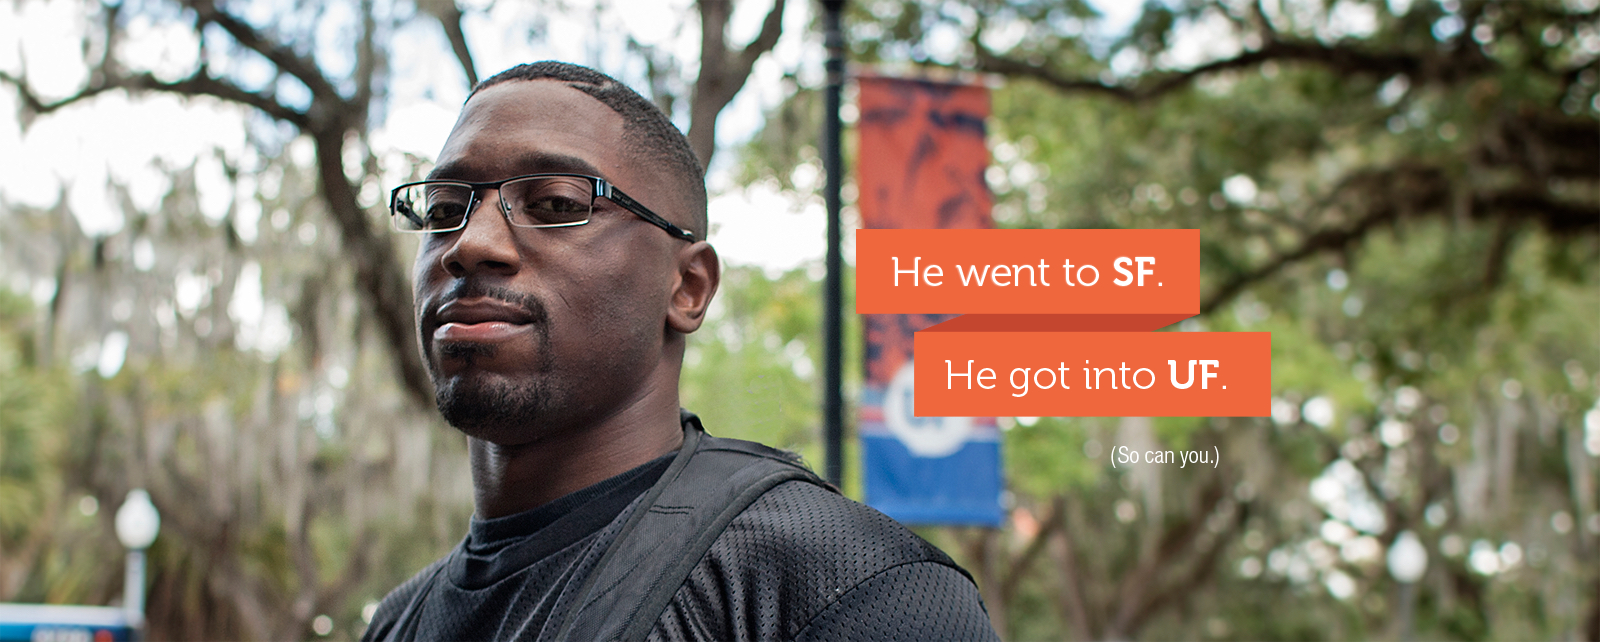 Milton went to SF. He got into UF.